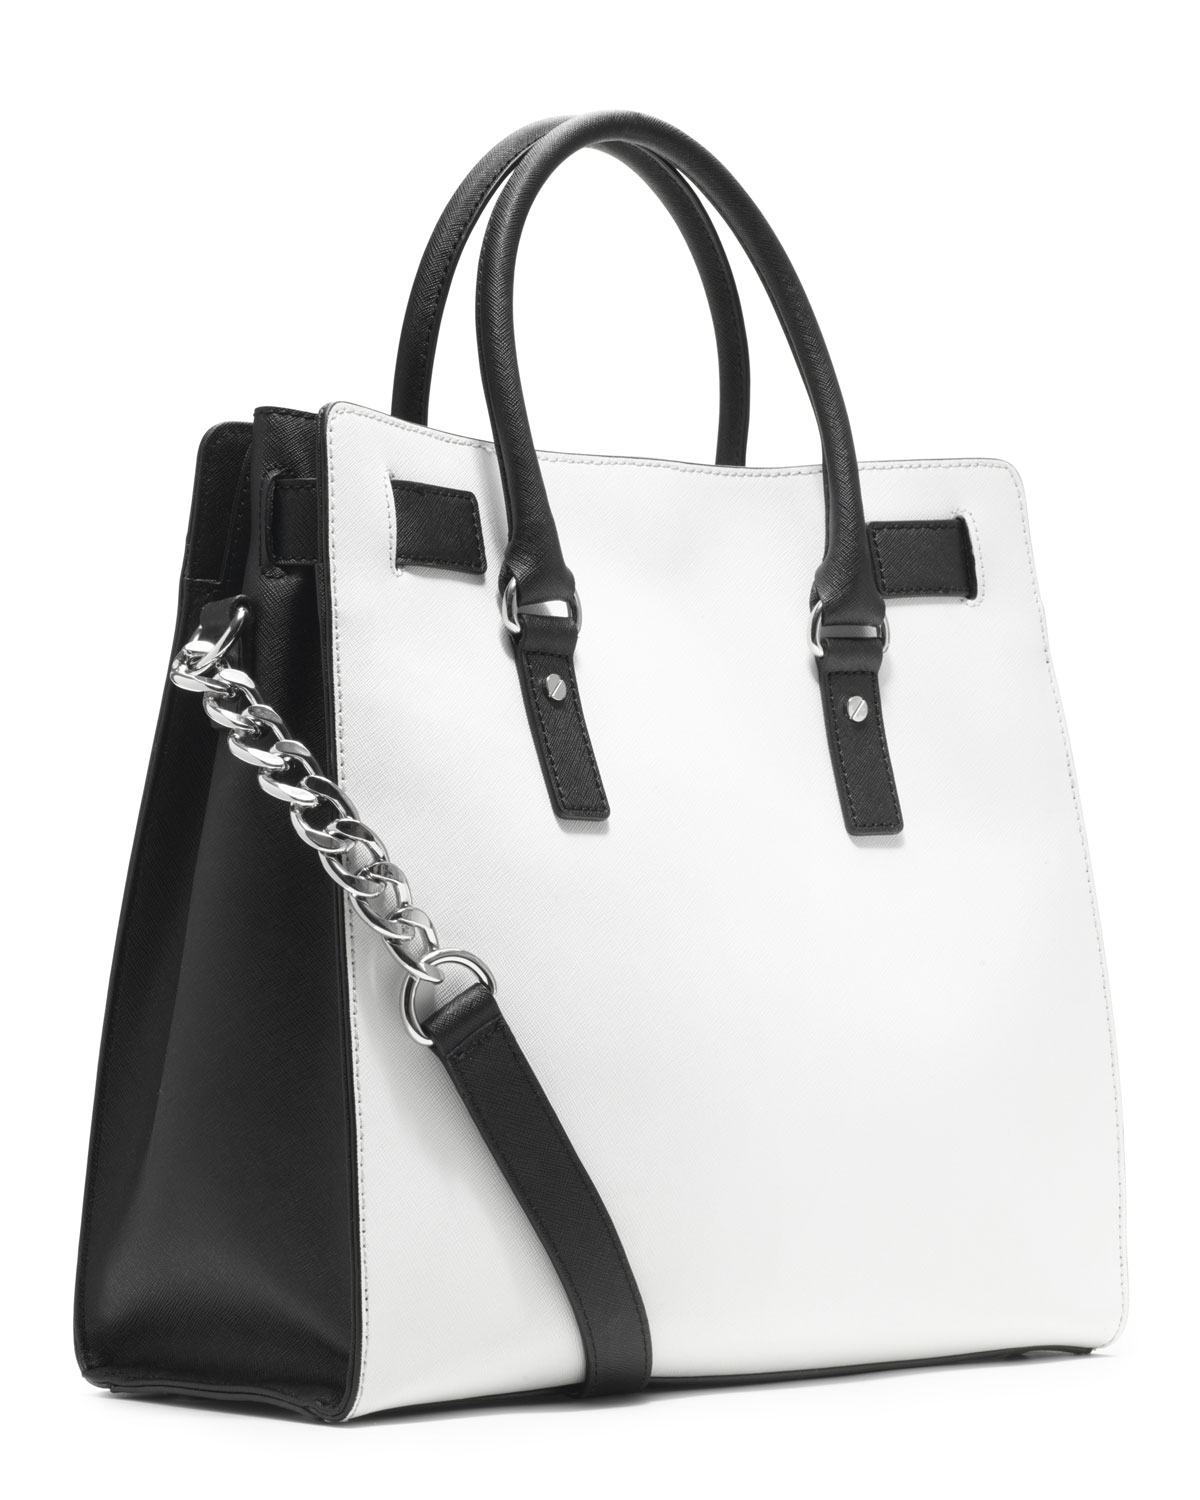 ... black and white wheretoget 44a25 cf51b  clearance lyst michael kors  michael large hamilton saffiano two tone tote in c190e 936bd e0f160daf7c06